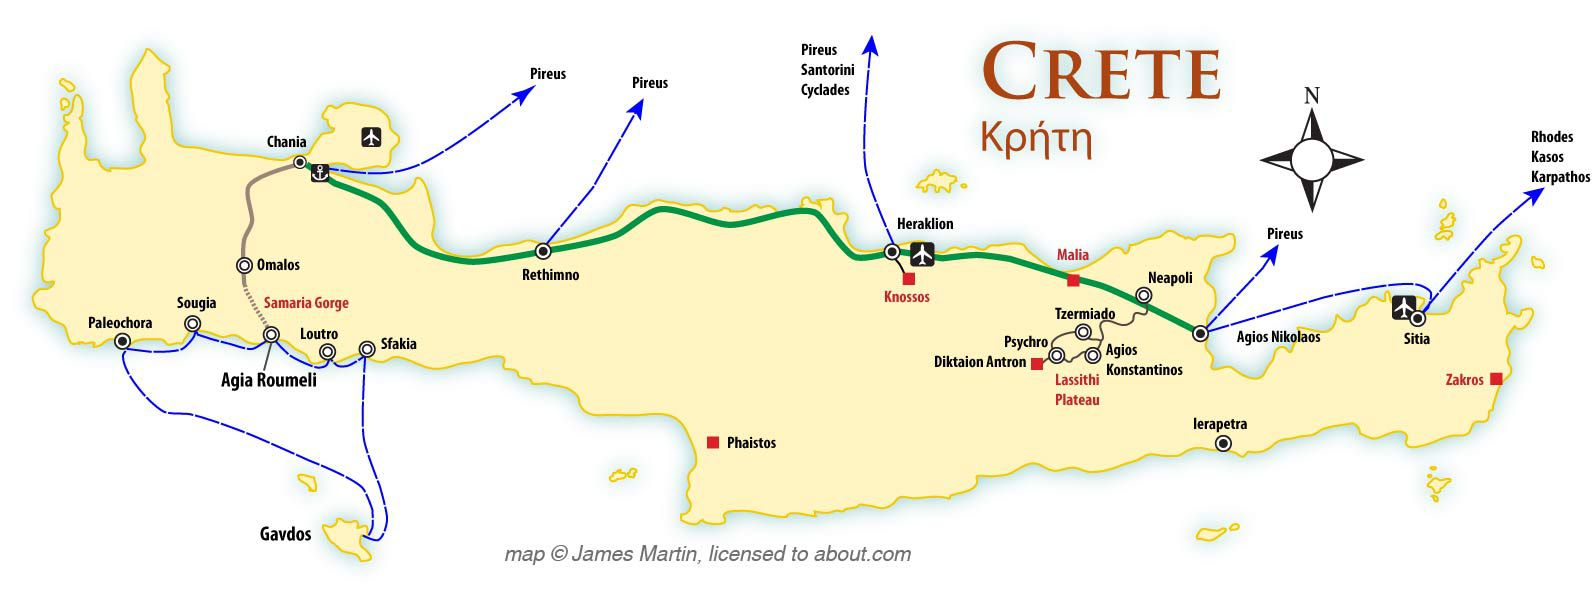 Crete Maps And Travel Guide